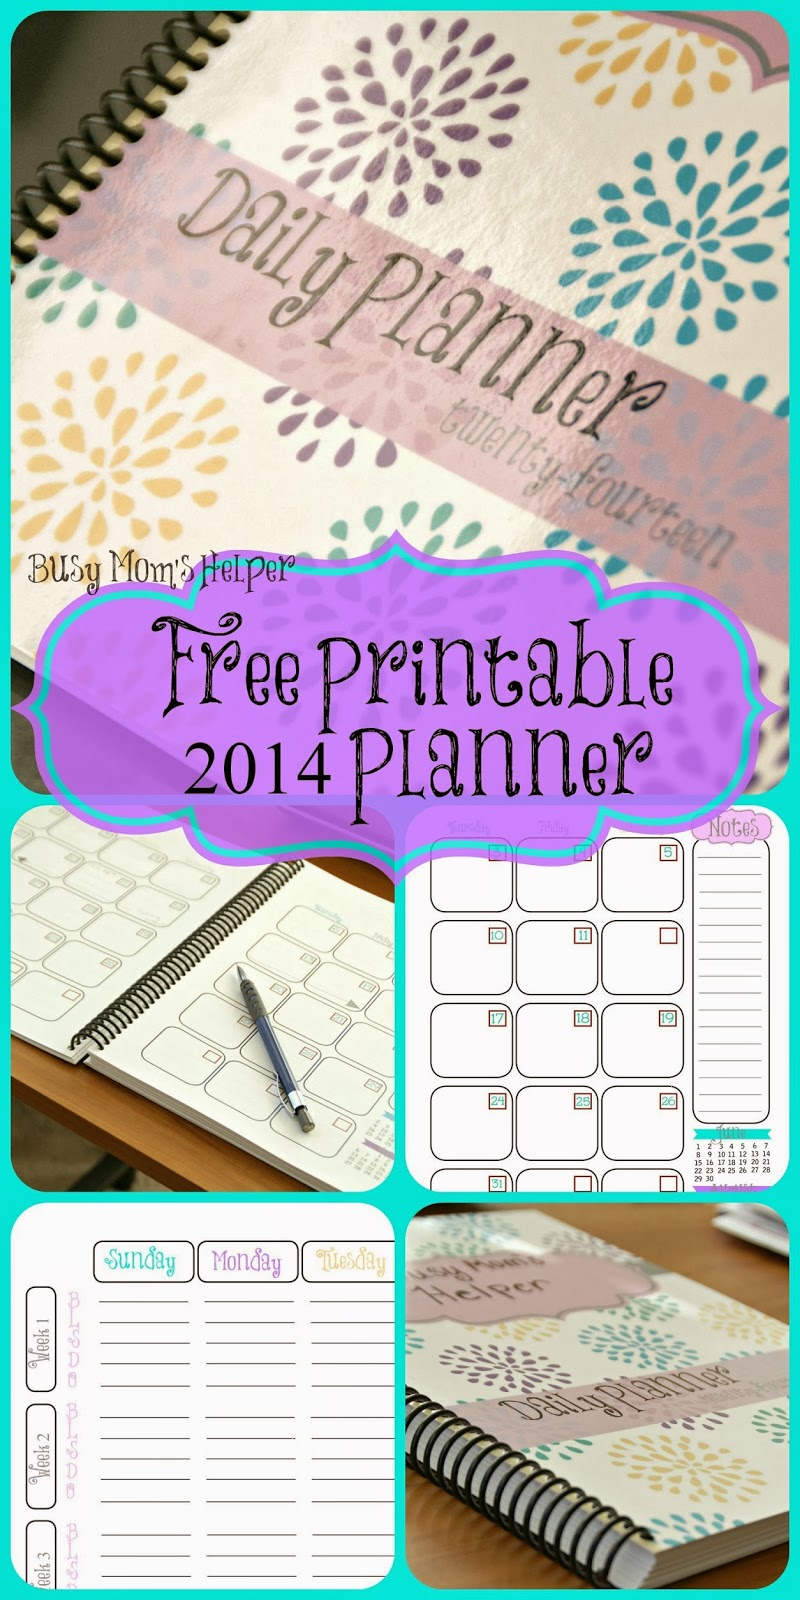 It's just a graphic of Effortless Free Printable Organizer